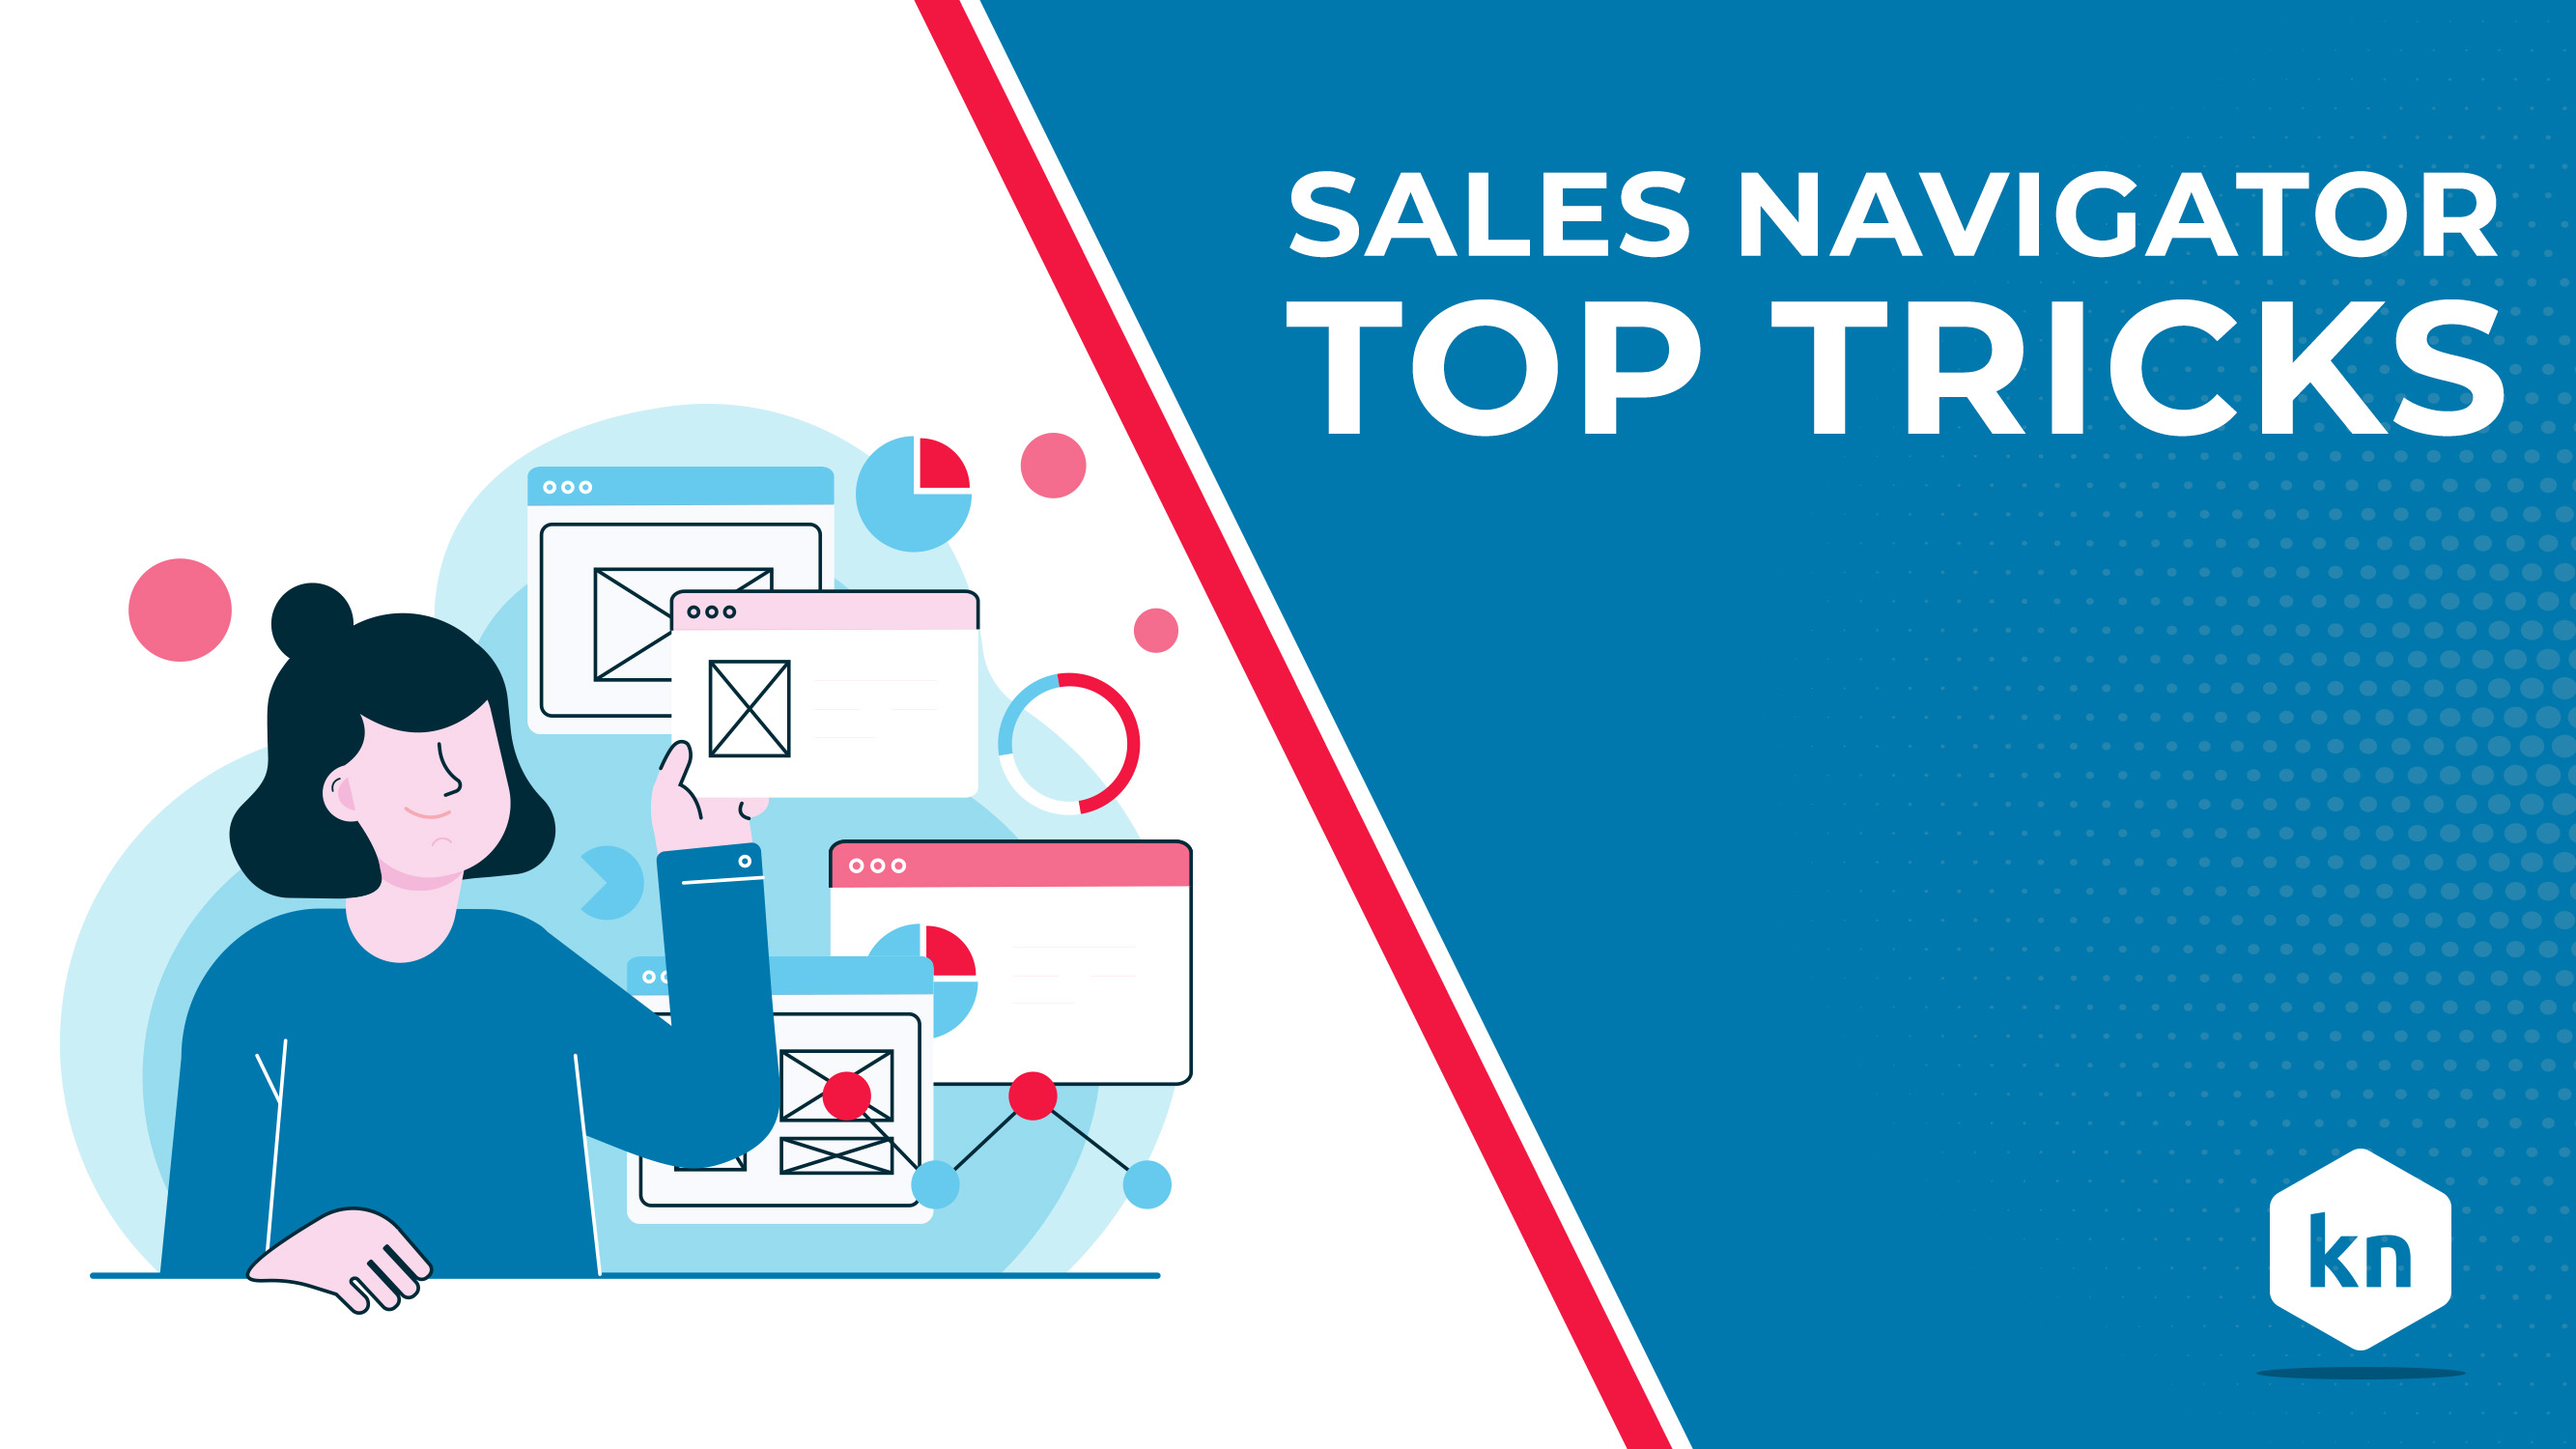 Top Tricks di Sales Navigator